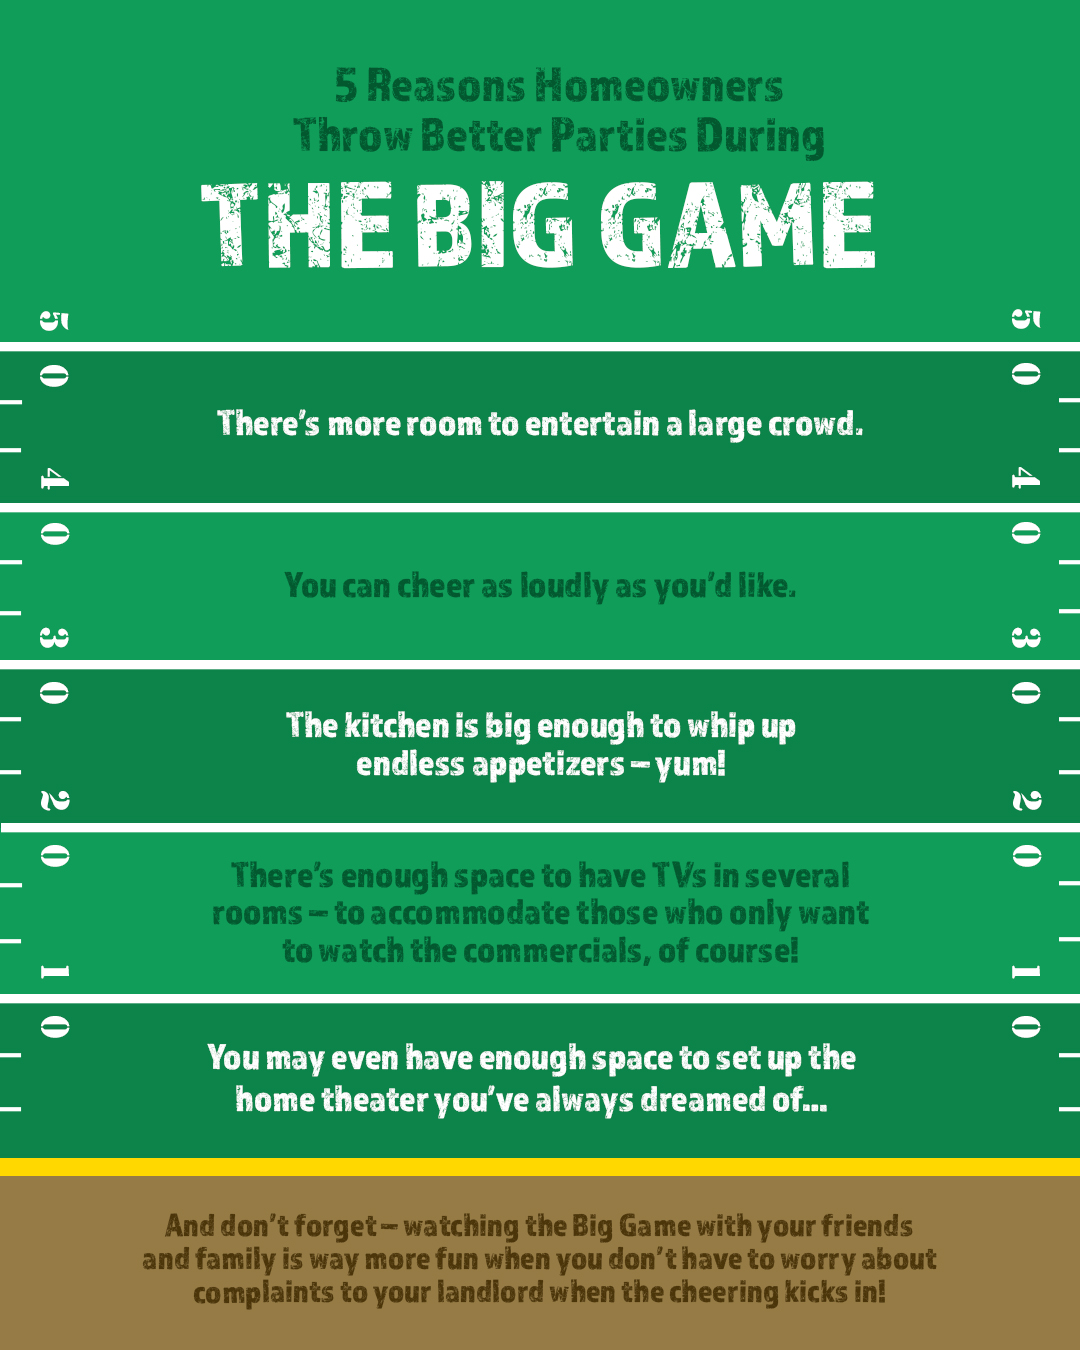 5 Reasons Homeowners Throw Better Parties During the Big Game [INFOGRAPHIC] | Bridge Builders